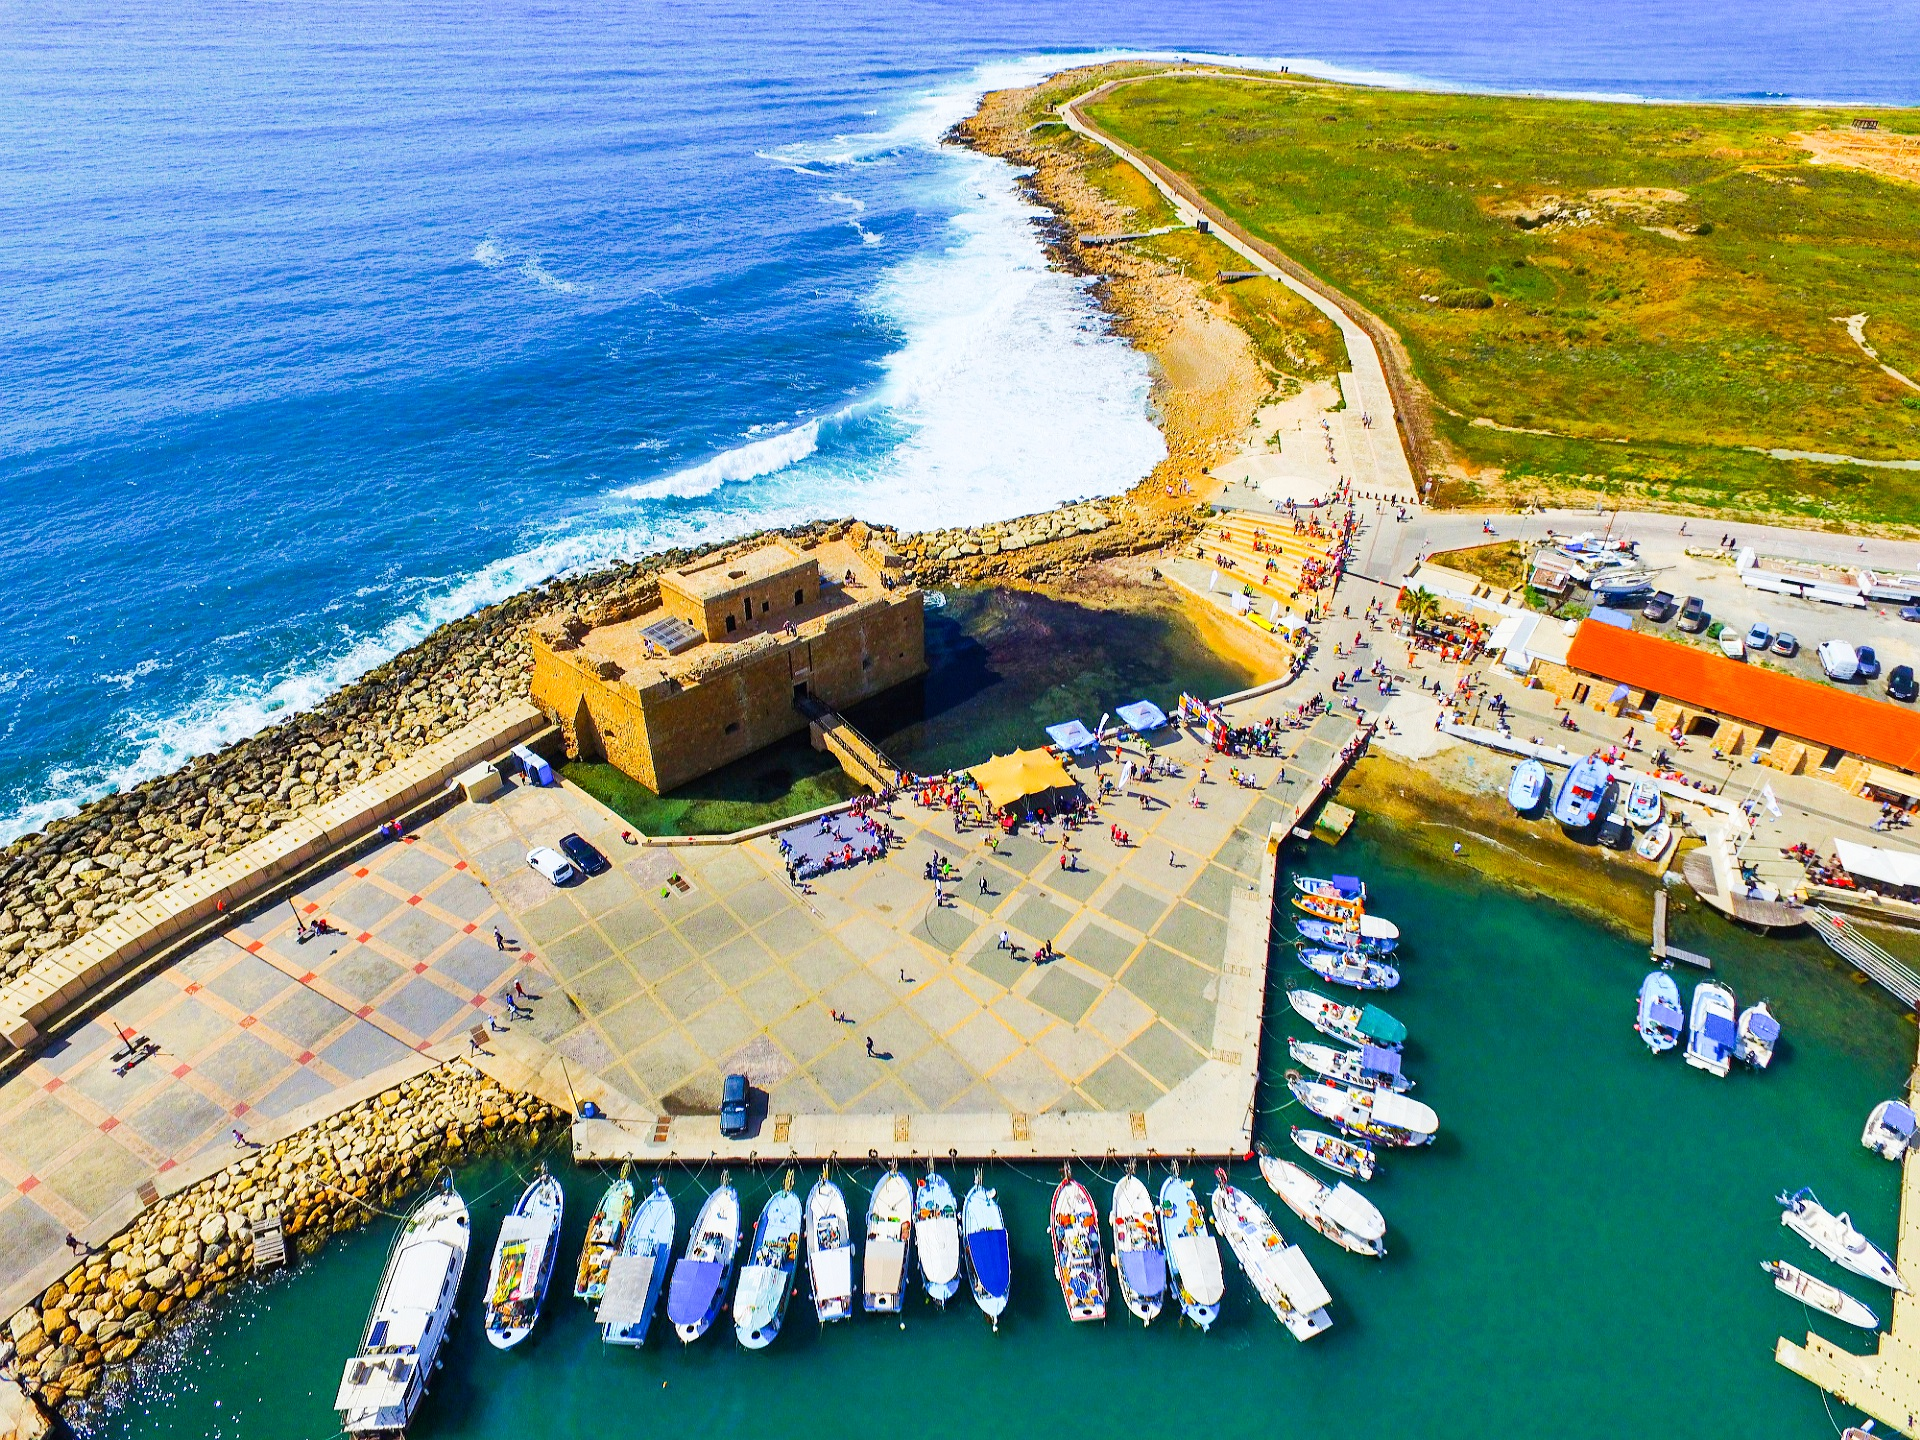 Ariel shot of Paphos Castle with